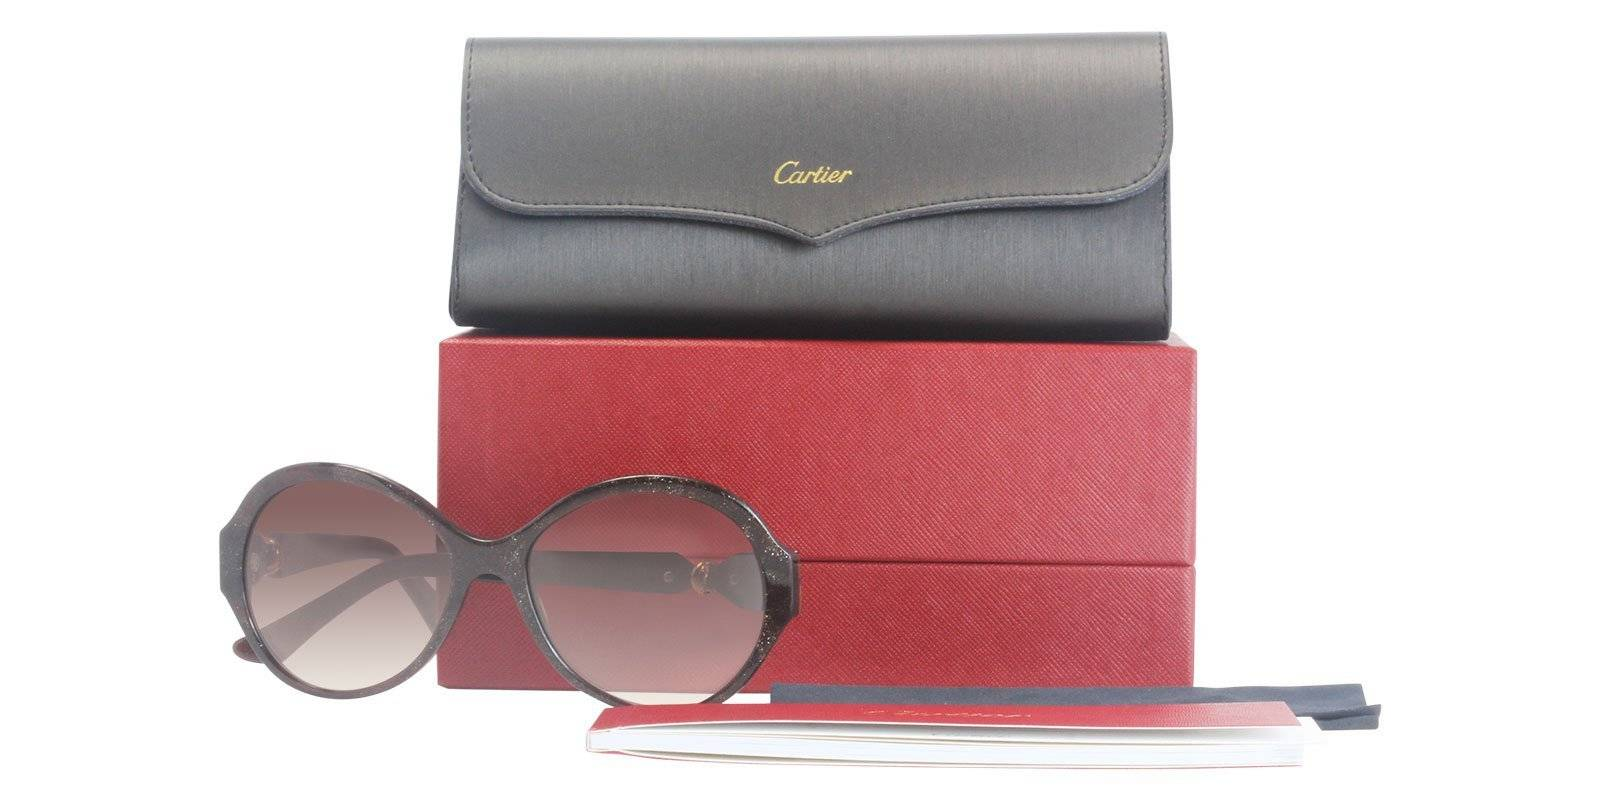 82e623529294 Cartier ESW00199 Aviator frame with Pearl Grey Polarised lenses and Silver  Transparent frame. These sunglasses feature a pilot style frame with brushed  ...